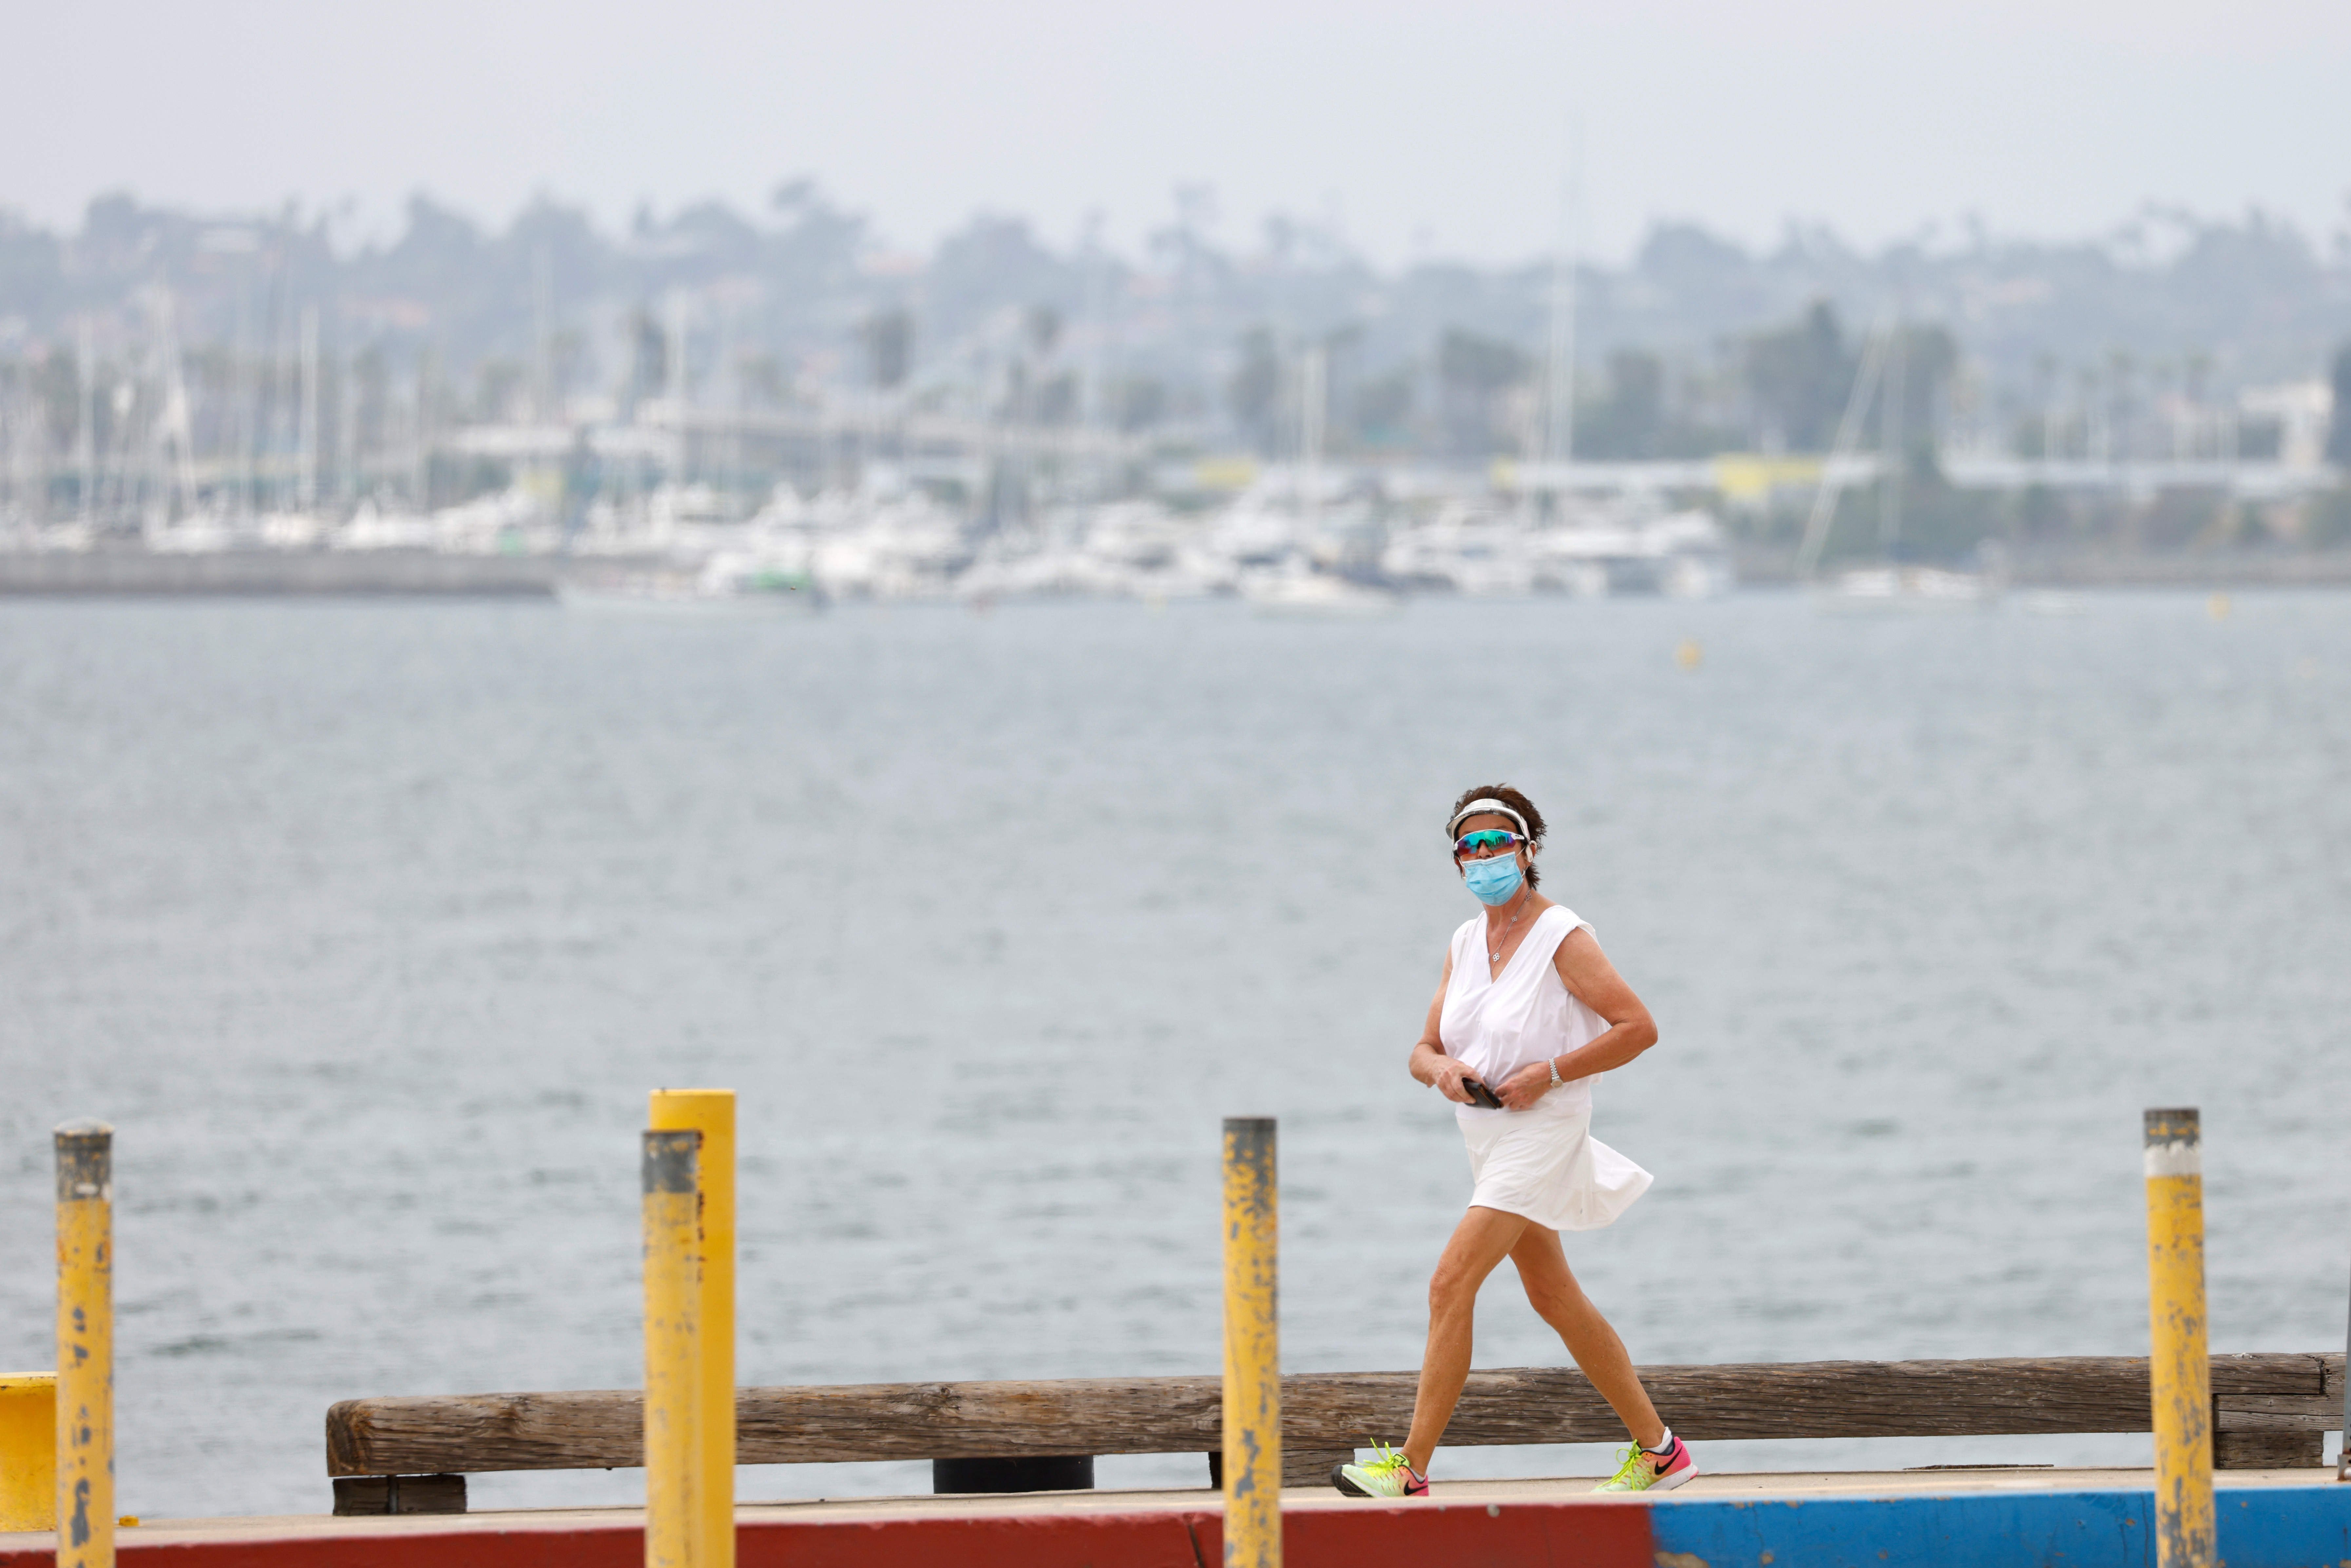 A woman wearing a protective mask takes a walk along the ocean amid a heatwave during the outbreak of the coronavirus disease (COVID-19) in San Diego, California, U.S., August 18, 2020. REUTERS/Mike Blake - RC2LGI9DY38P